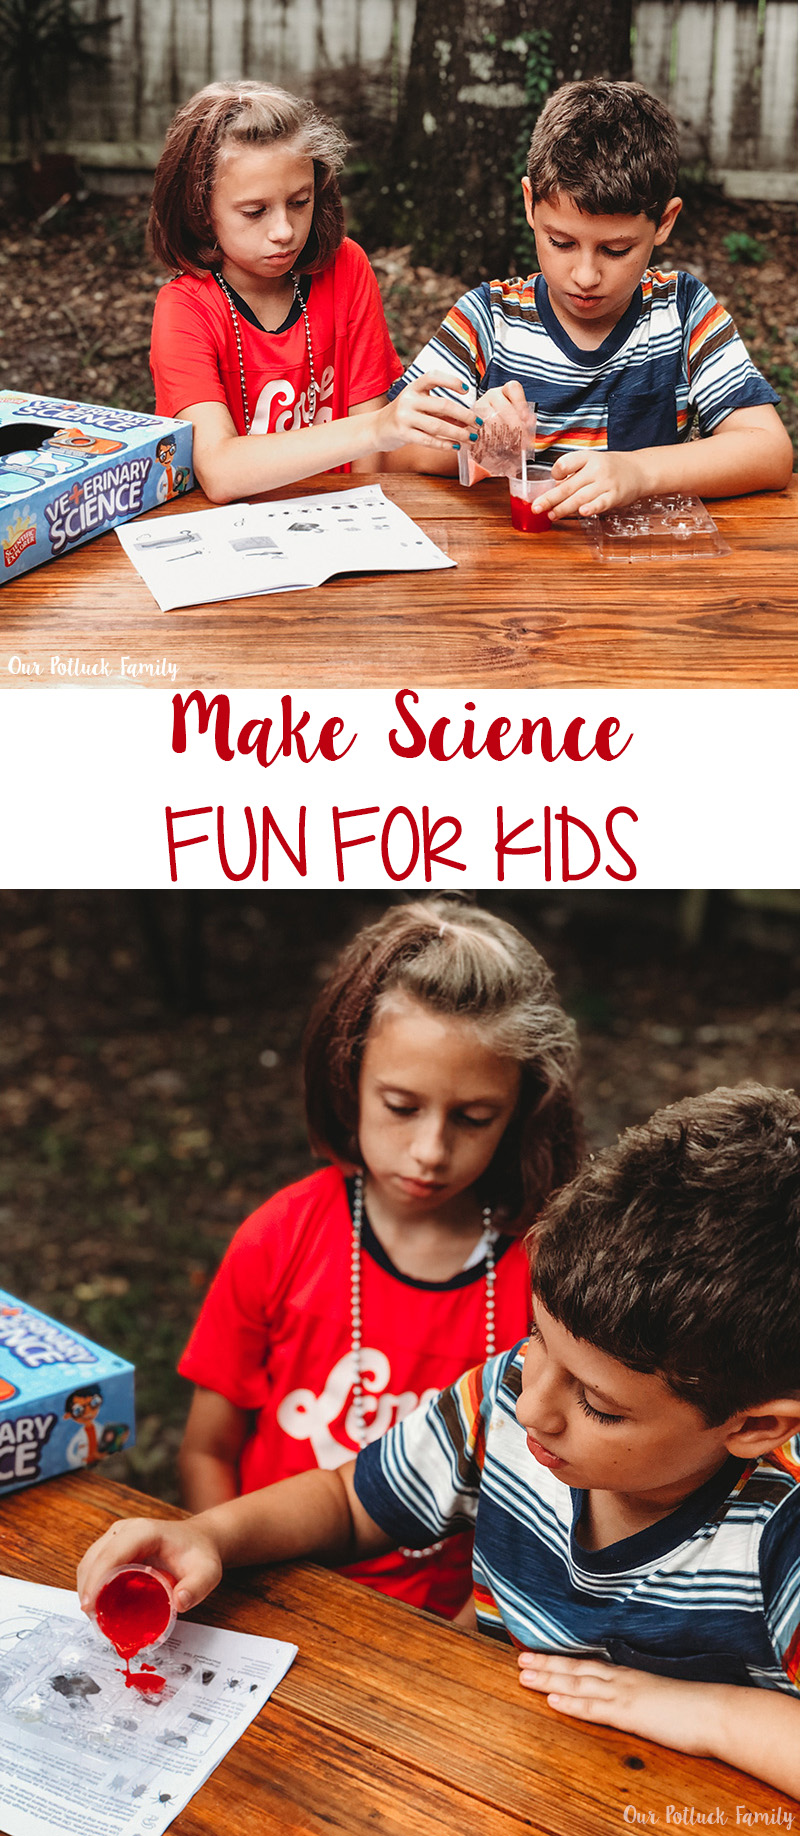 Make Science fun for Kids